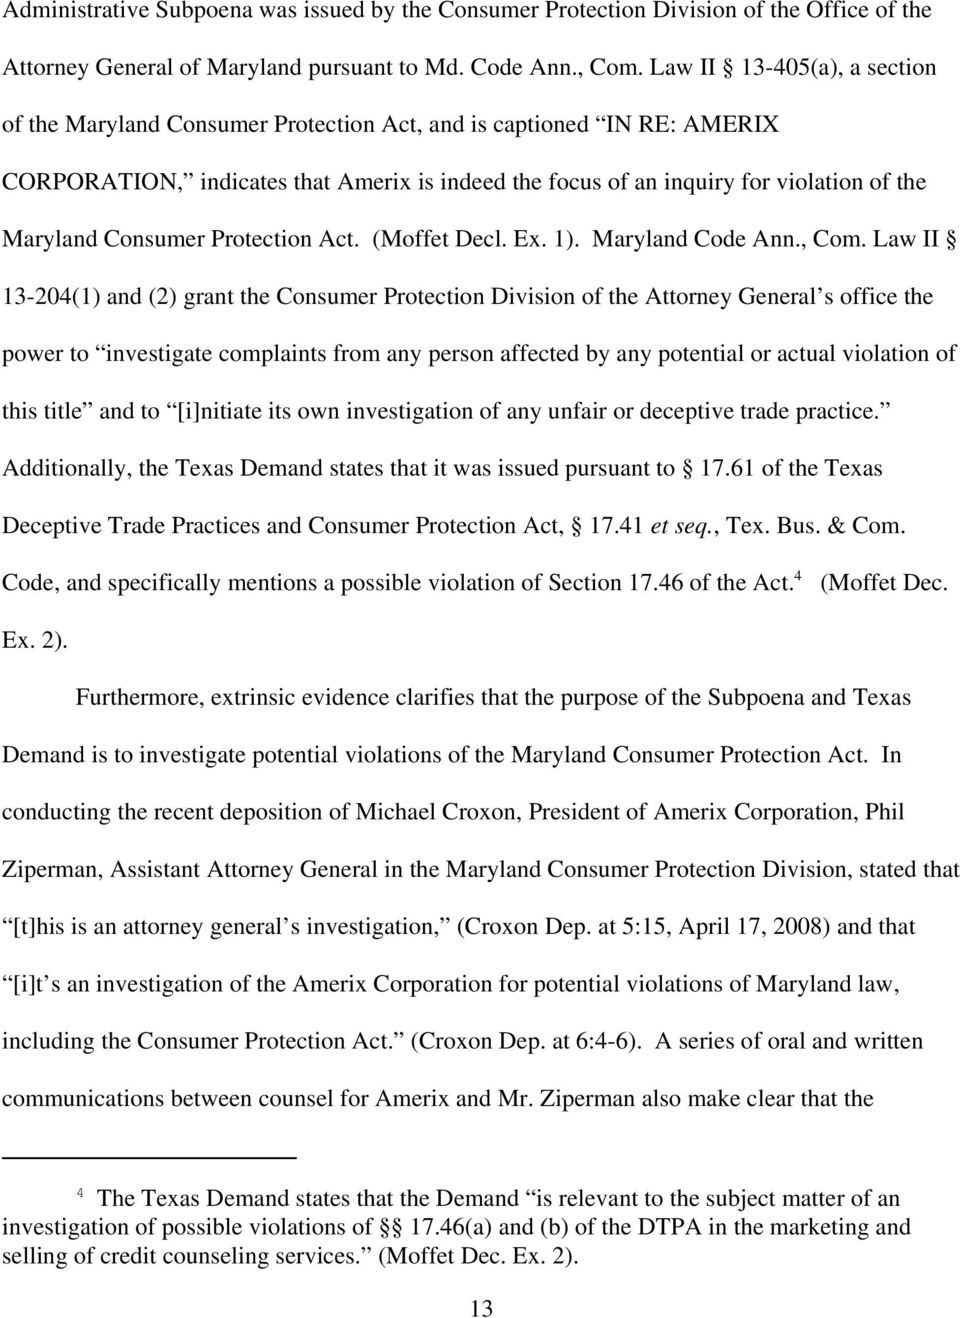 Consumer Protection Act. (Moffet Decl. Ex. 1). Maryland Code Ann., Com.